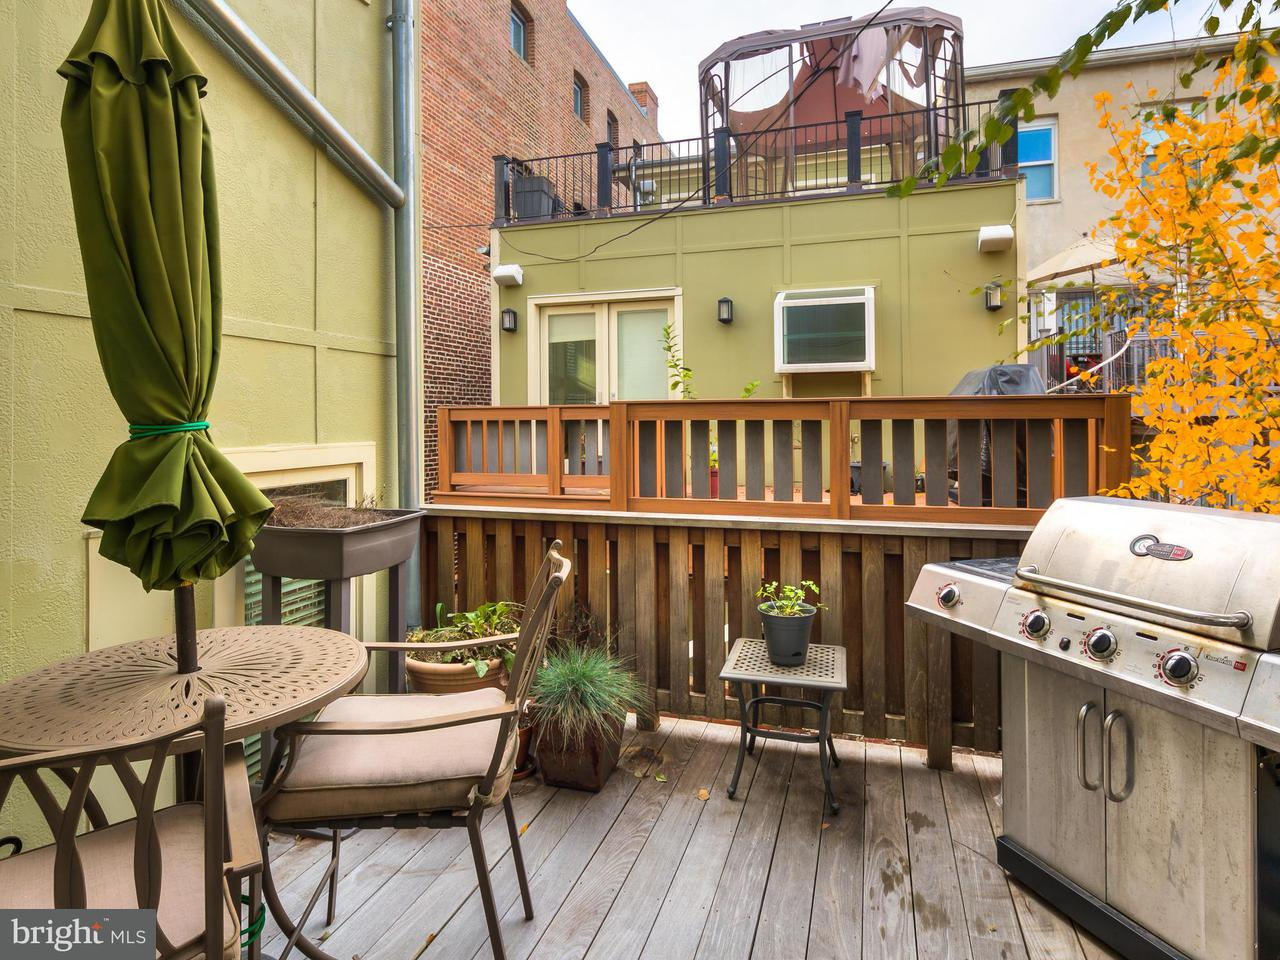 Additional photo for property listing at 1217 10th St Nw #C 1217 10th St Nw #C Washington, District Of Columbia 20001 United States